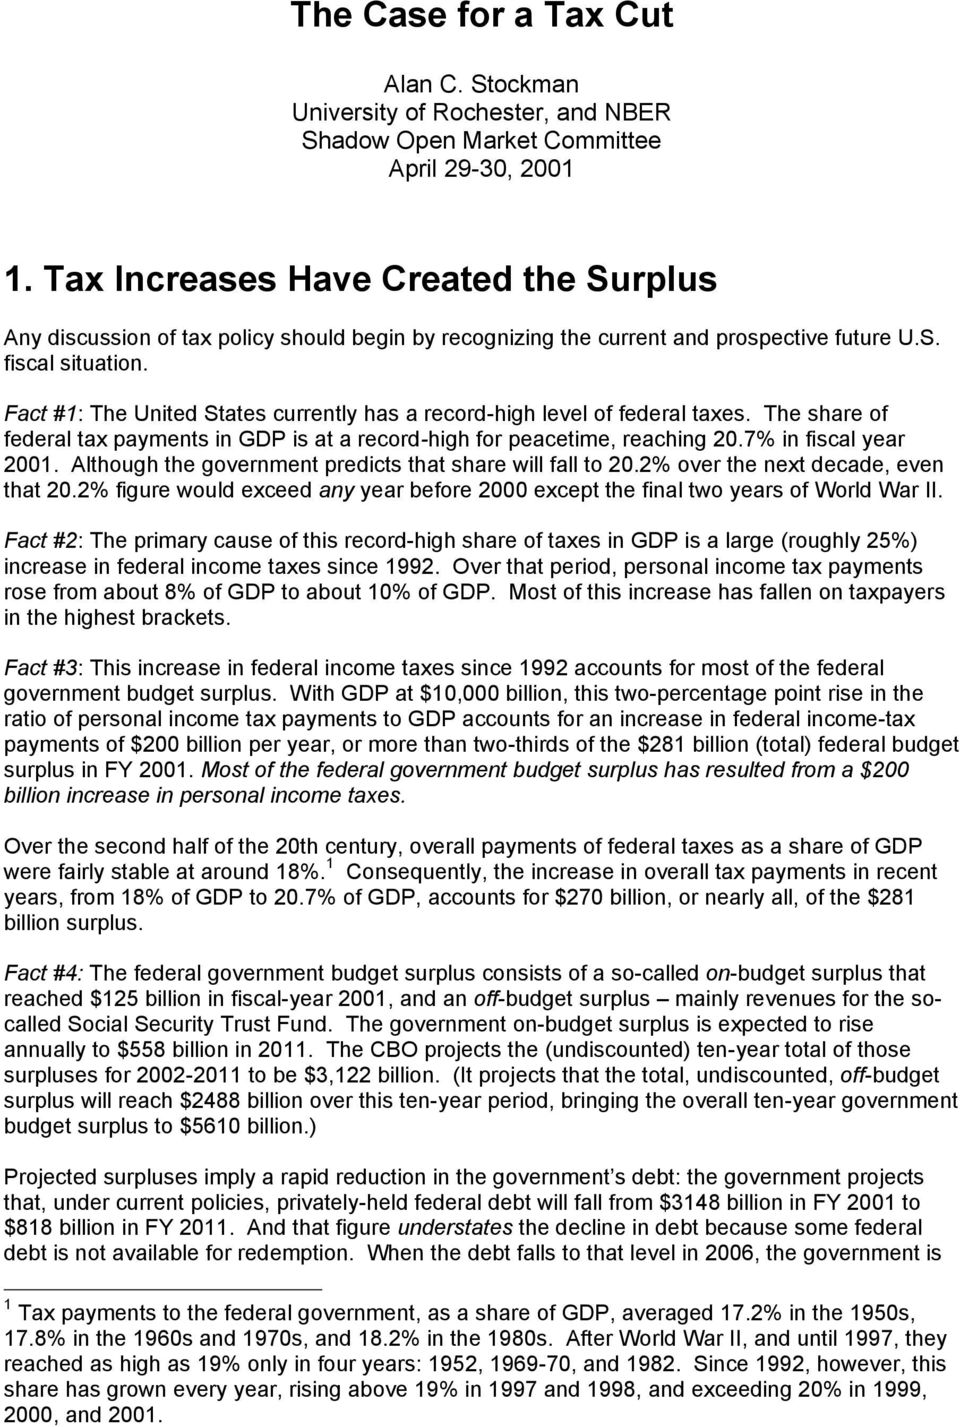 Fact #1: The United States currently has a record-high level of federal taxes. The share of federal tax payments in GDP is at a record-high for peacetime, reaching 20.7% in fiscal year 2001.